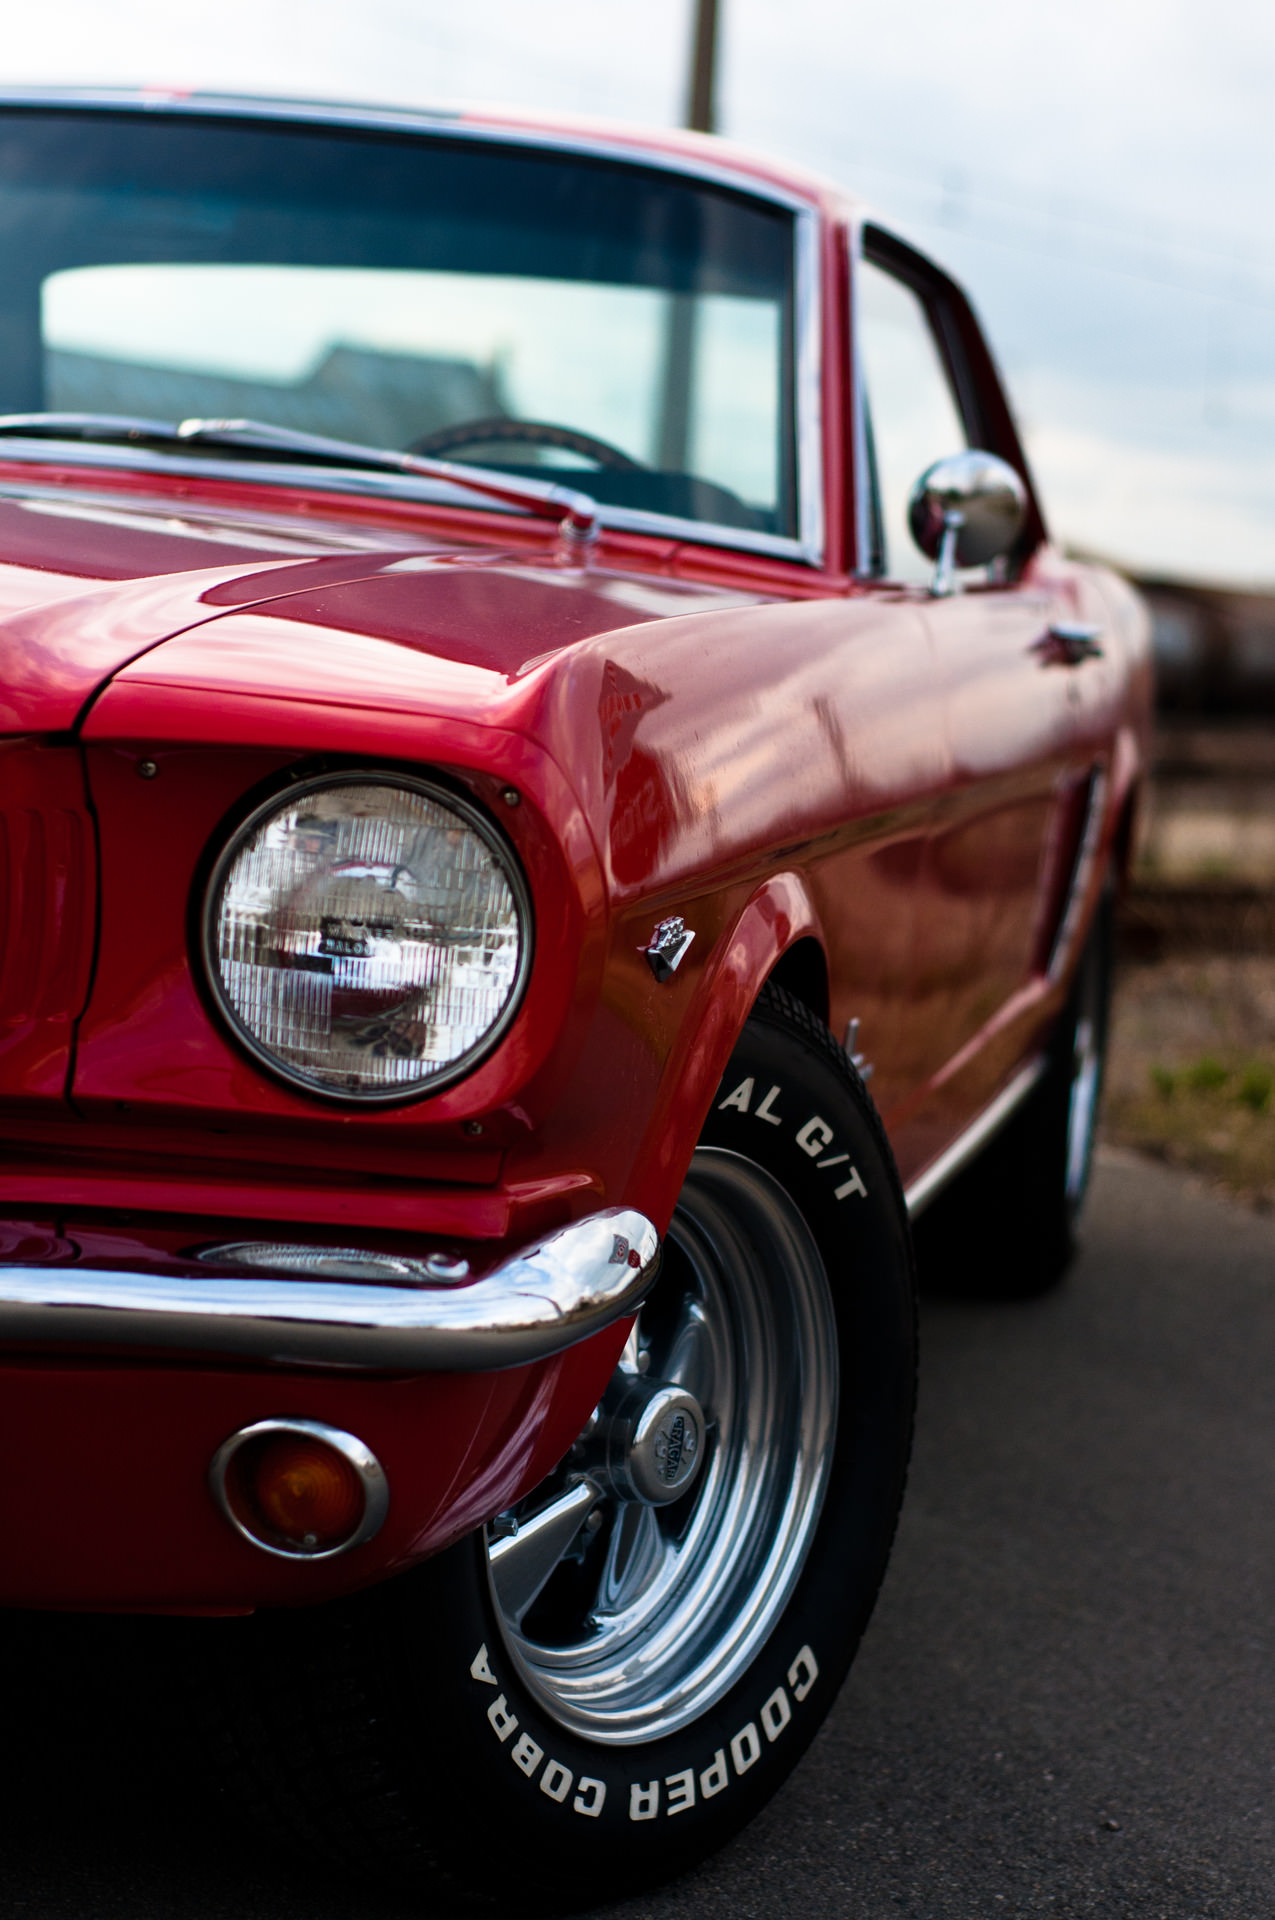 ford mustang red sportscar vehicle drive road fast wheel classic traffic